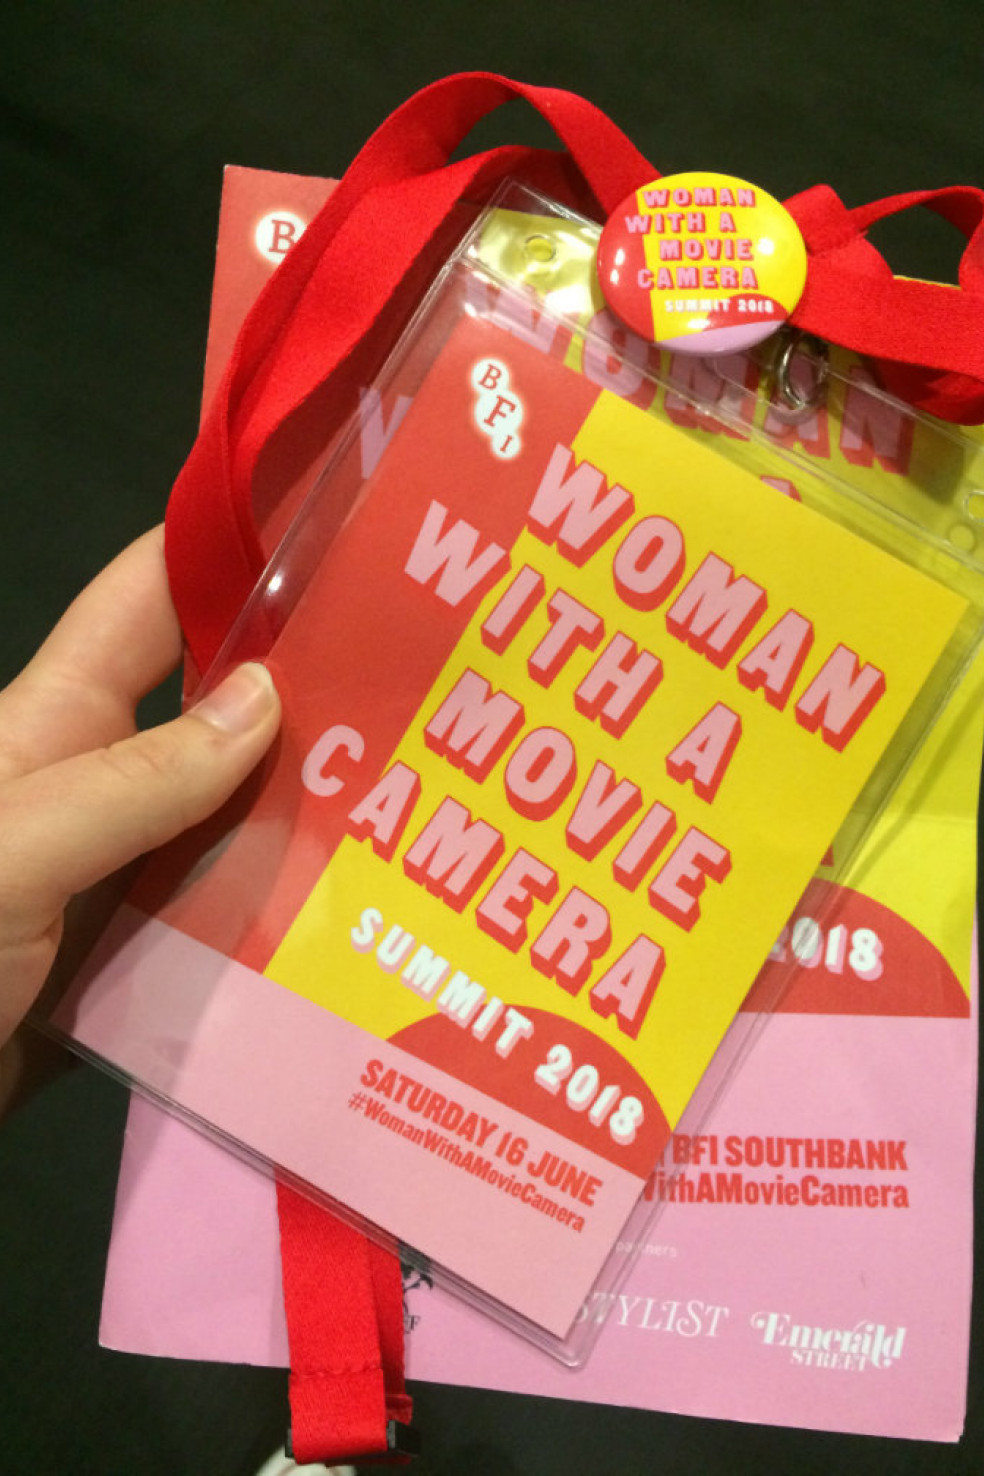 Tickets for the BFI's Woman with a Movie Camera